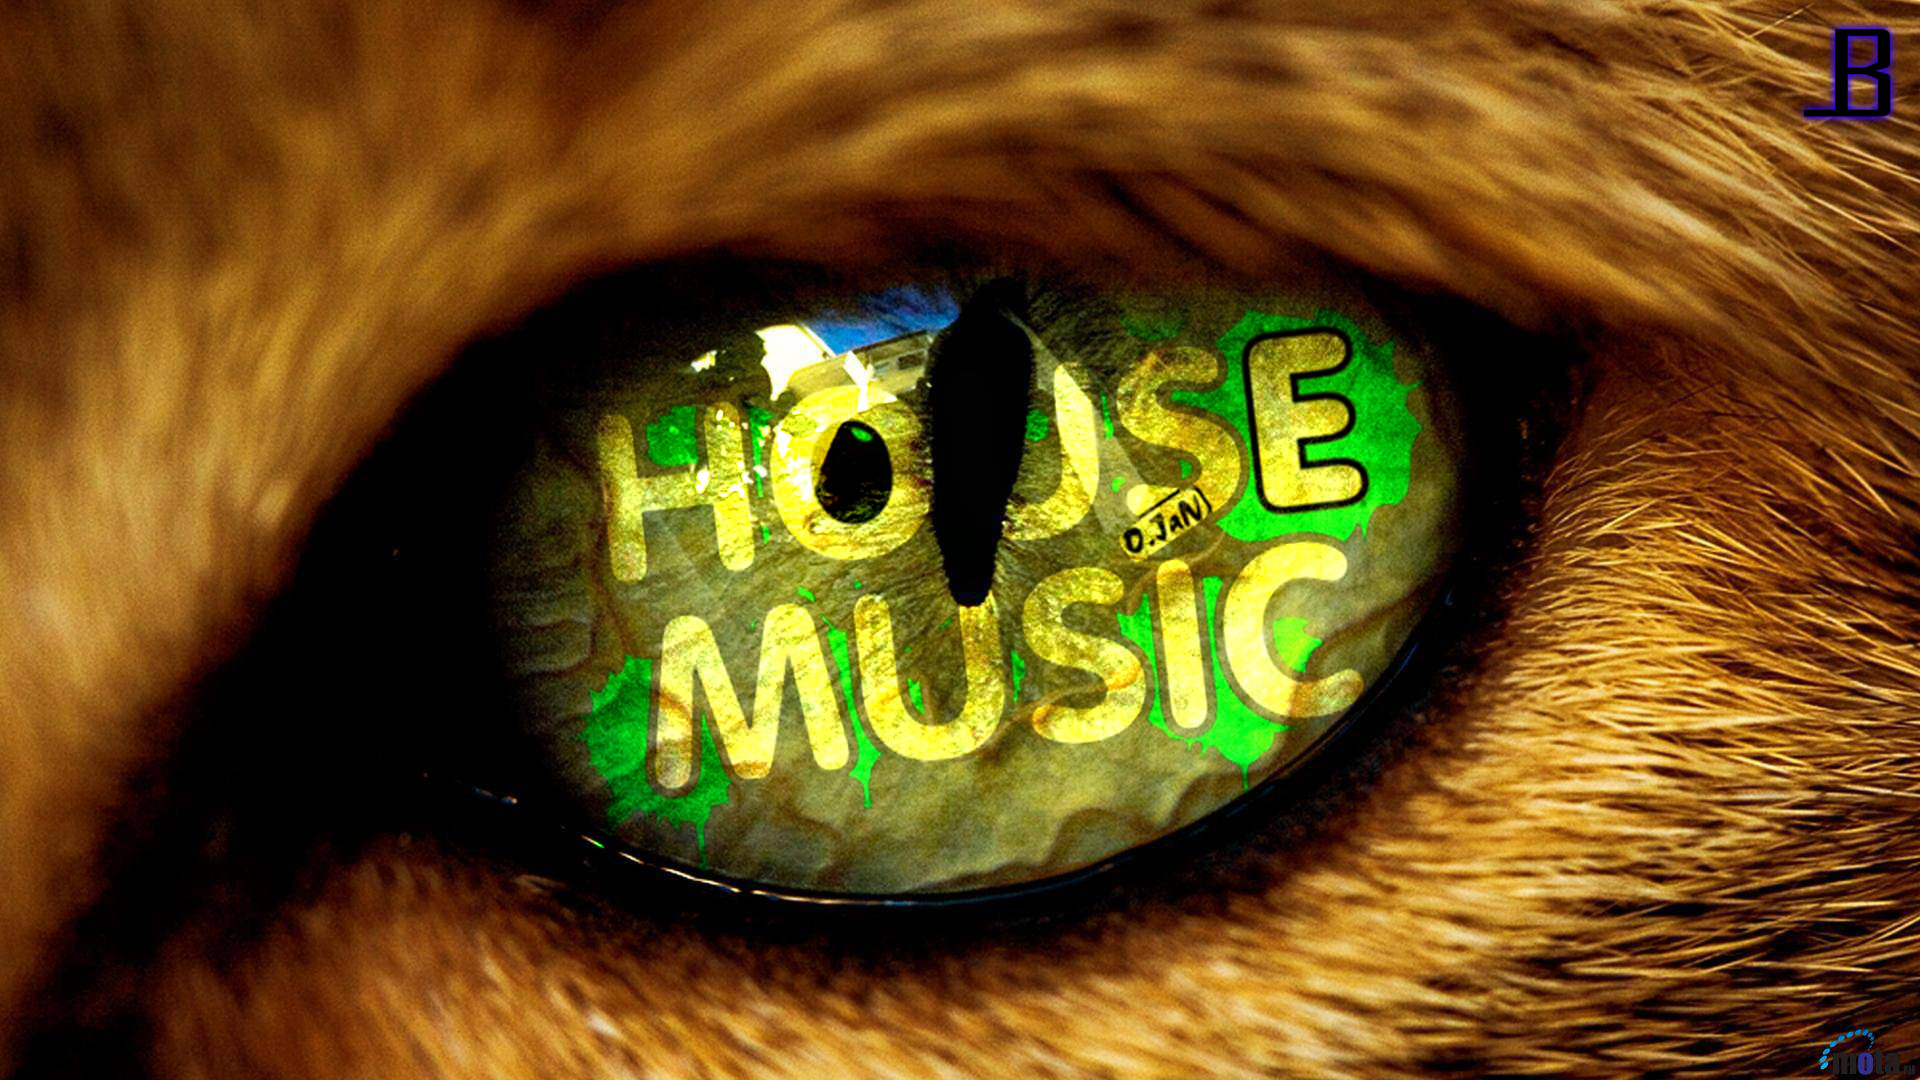 House music wallpaper hd by leadbeats on deviantart for House music house